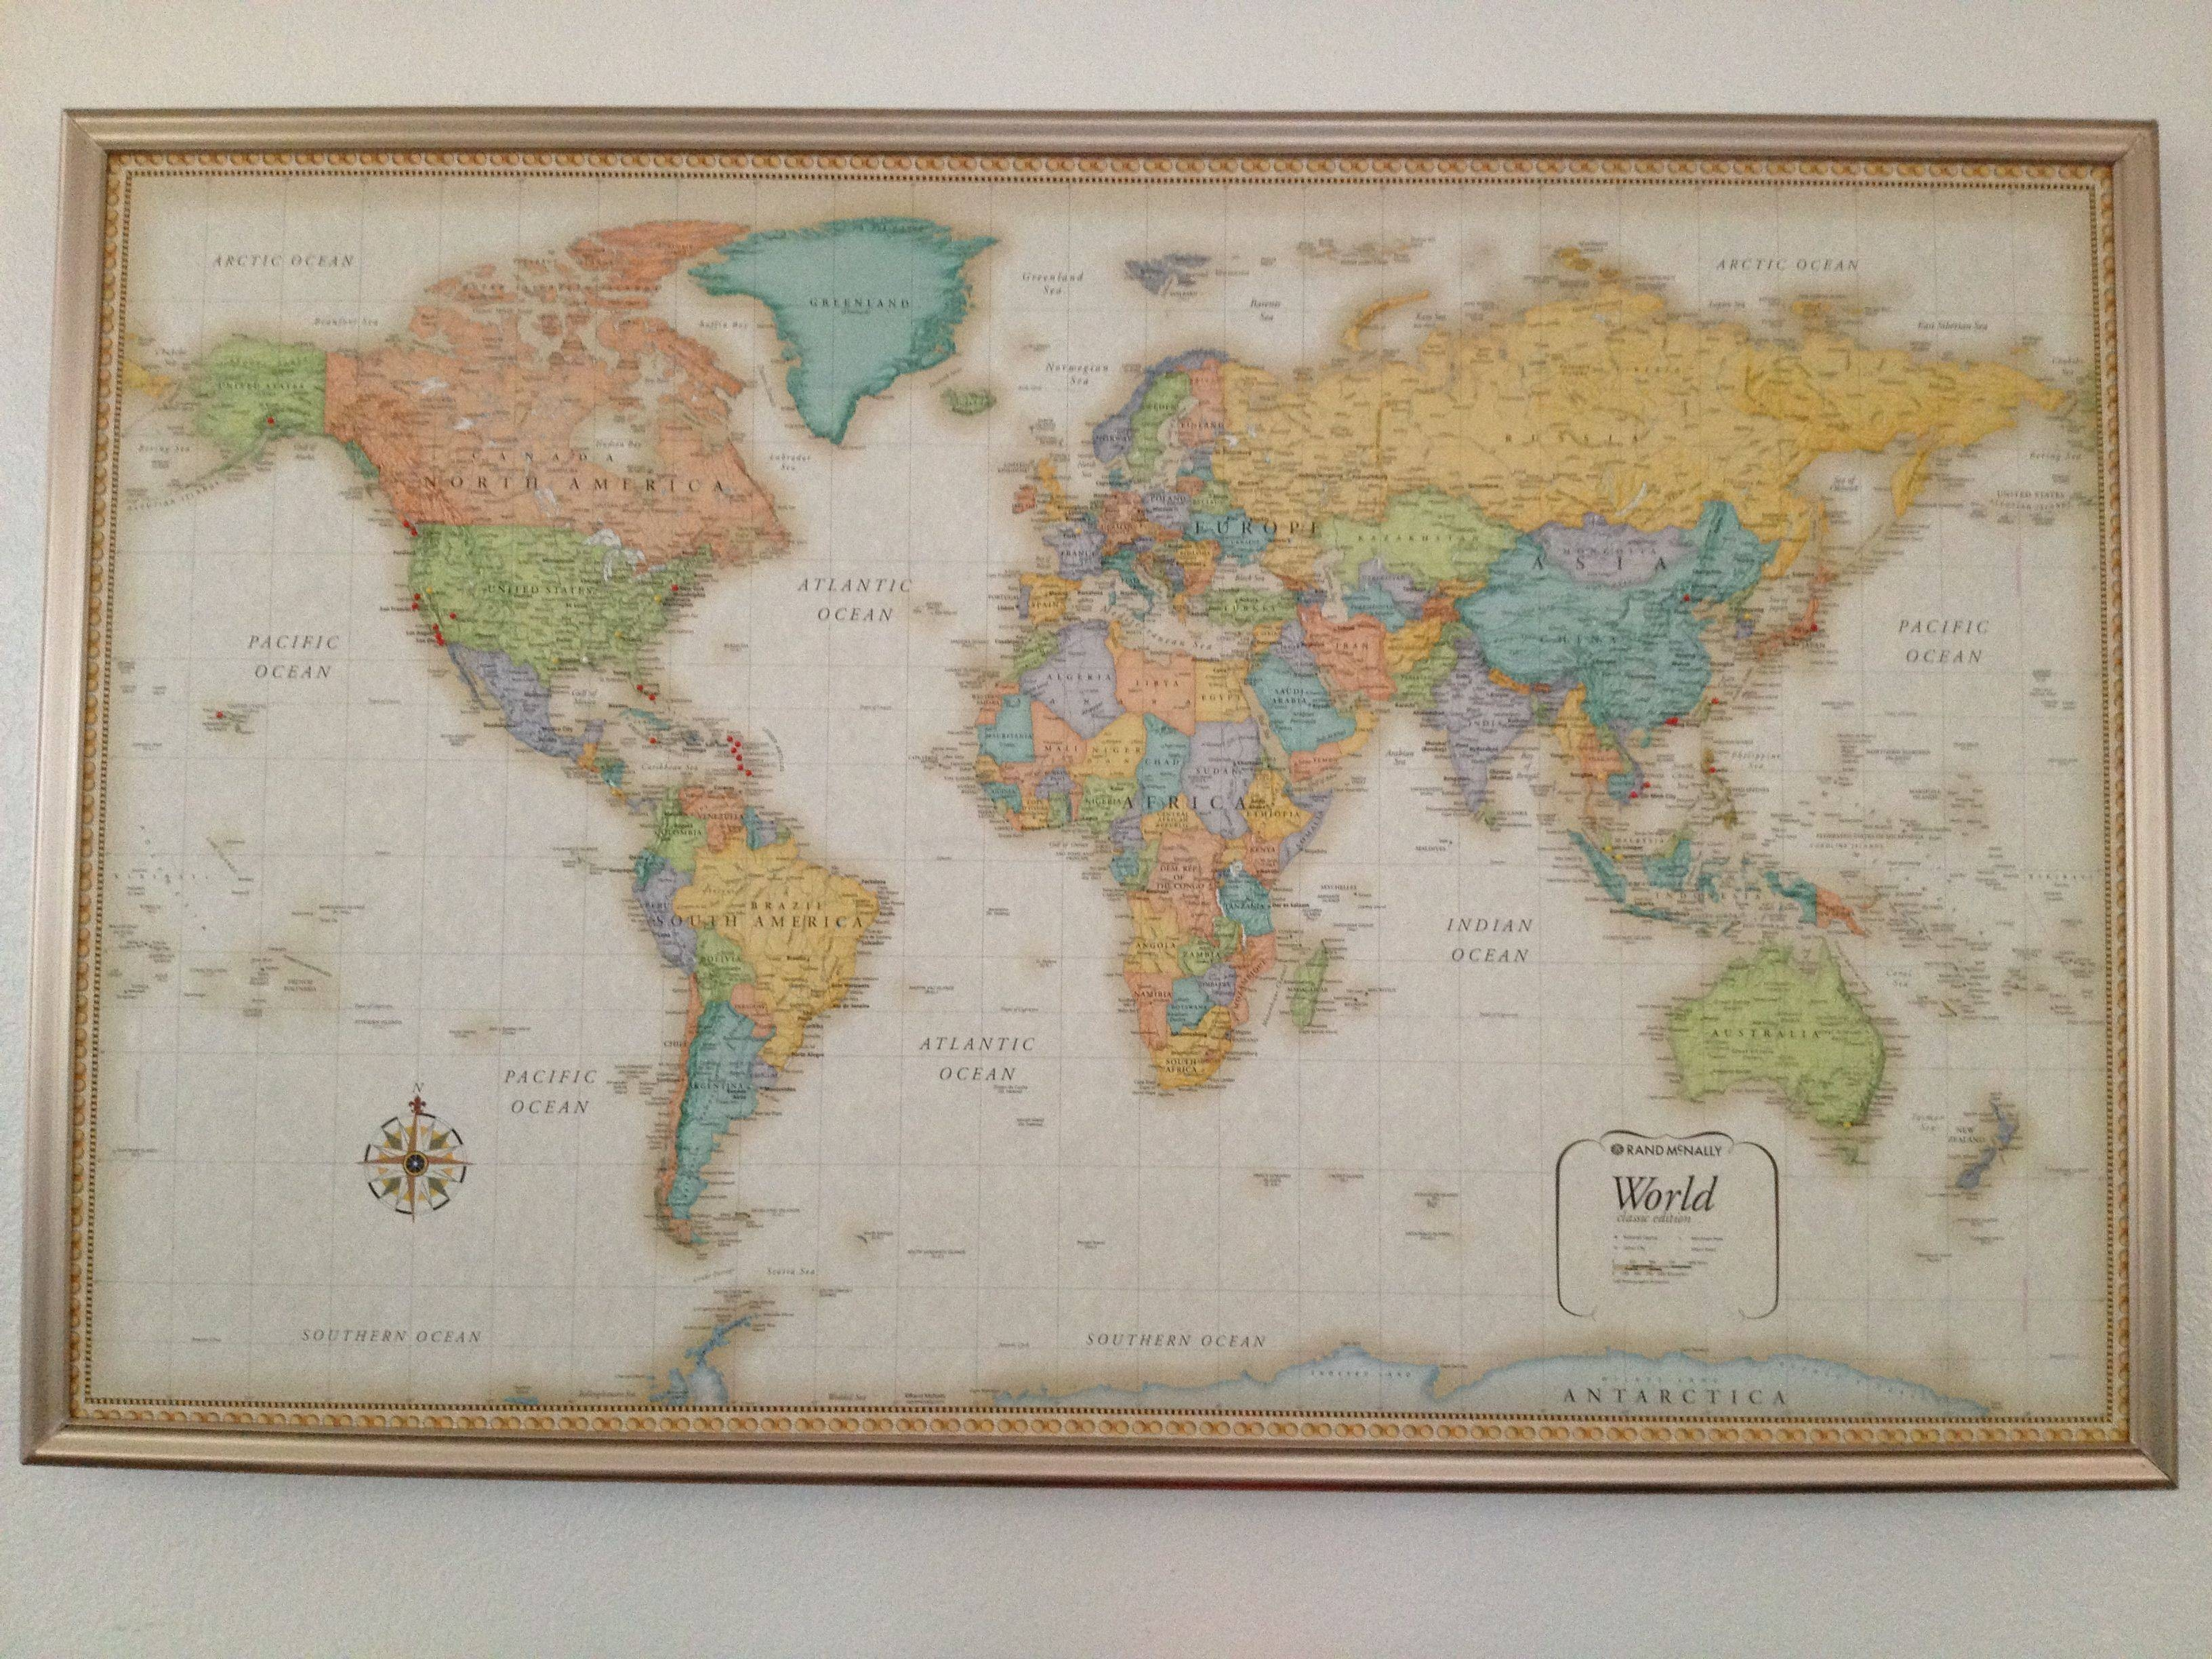 Diy Framed World Map With Pins | Hamonious Pertaining To Current Framed World Map Wall Art (View 18 of 20)